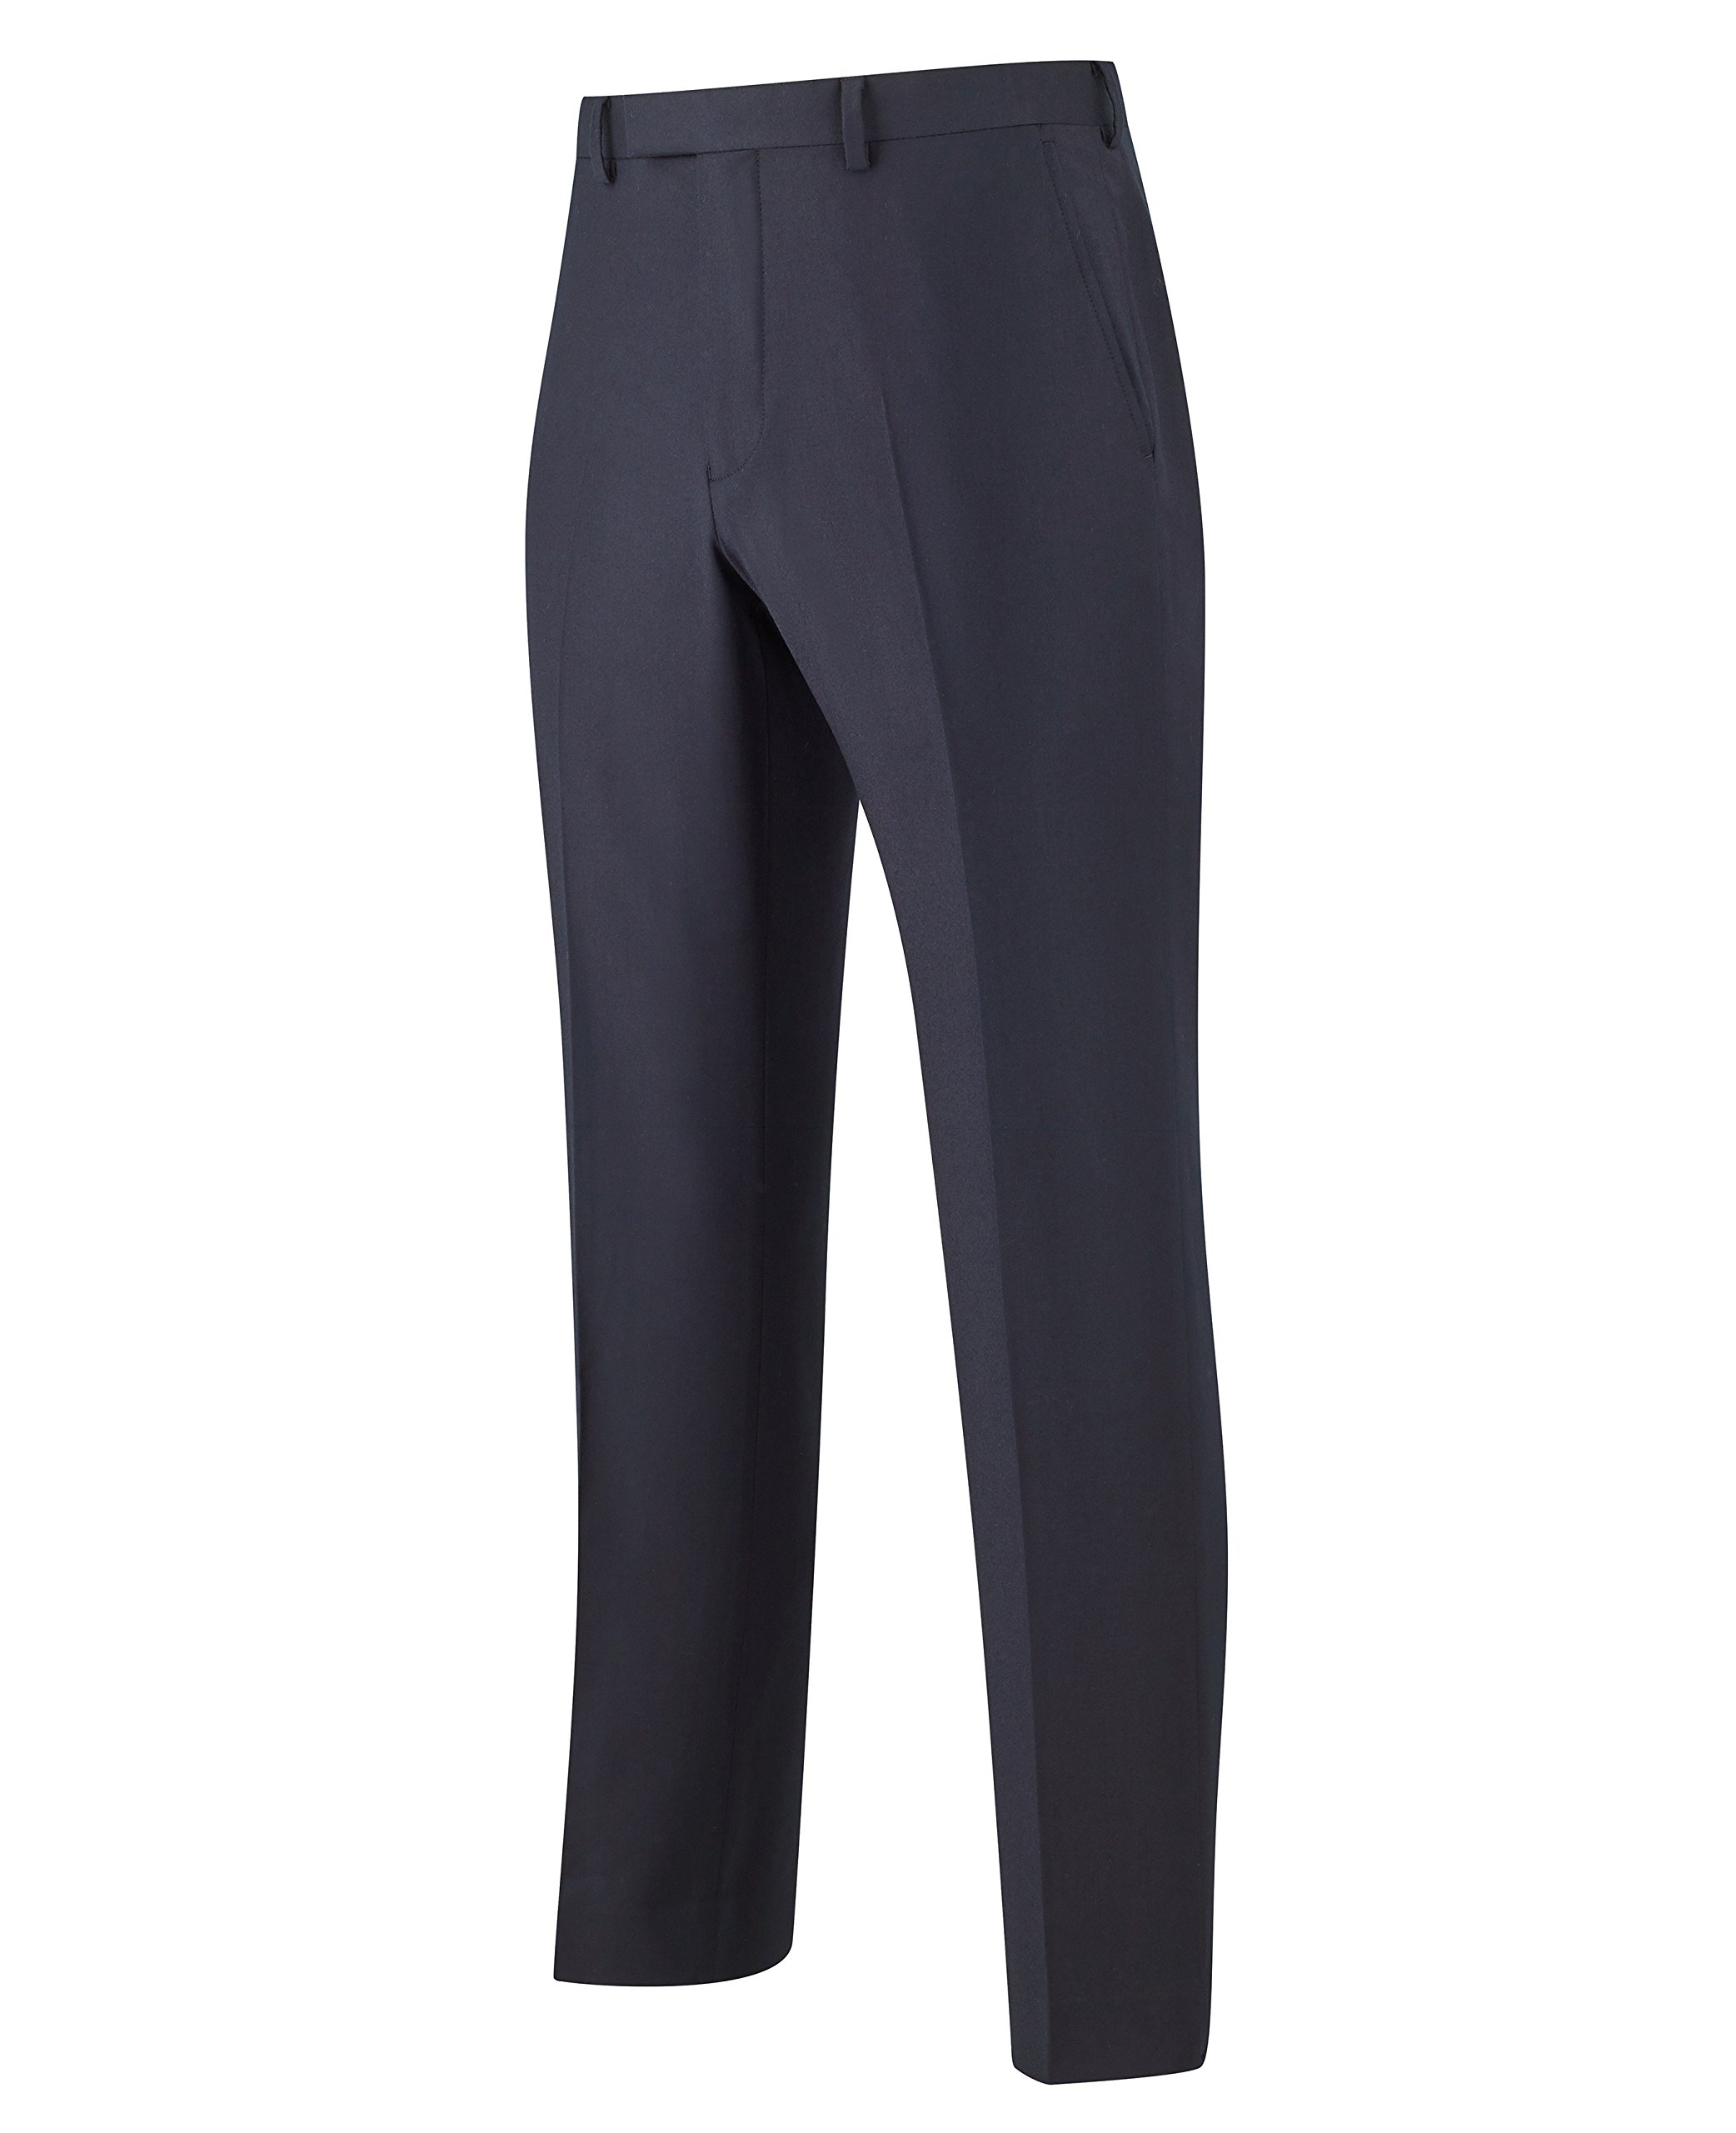 The Savile Row Company Savile Row Men's Navy Luxury Flannel Business Suit Trousers 40'' 32''